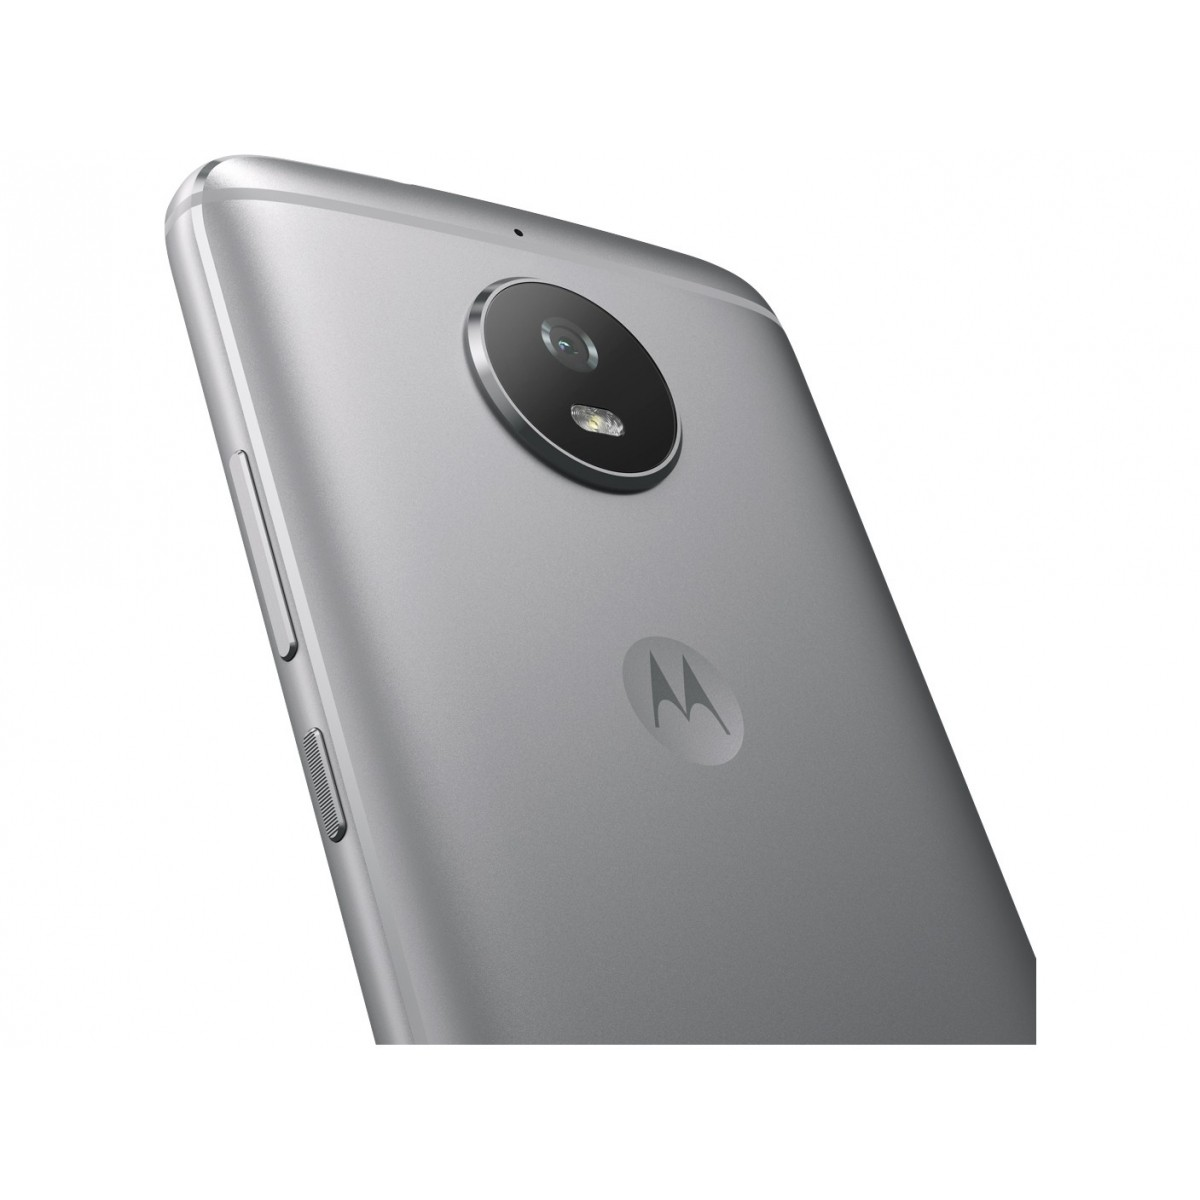 Celular Moto G5S Xt1792 Oc|2Gbram|32Gb|5,2Full Hd|4G|16Mp|Prata